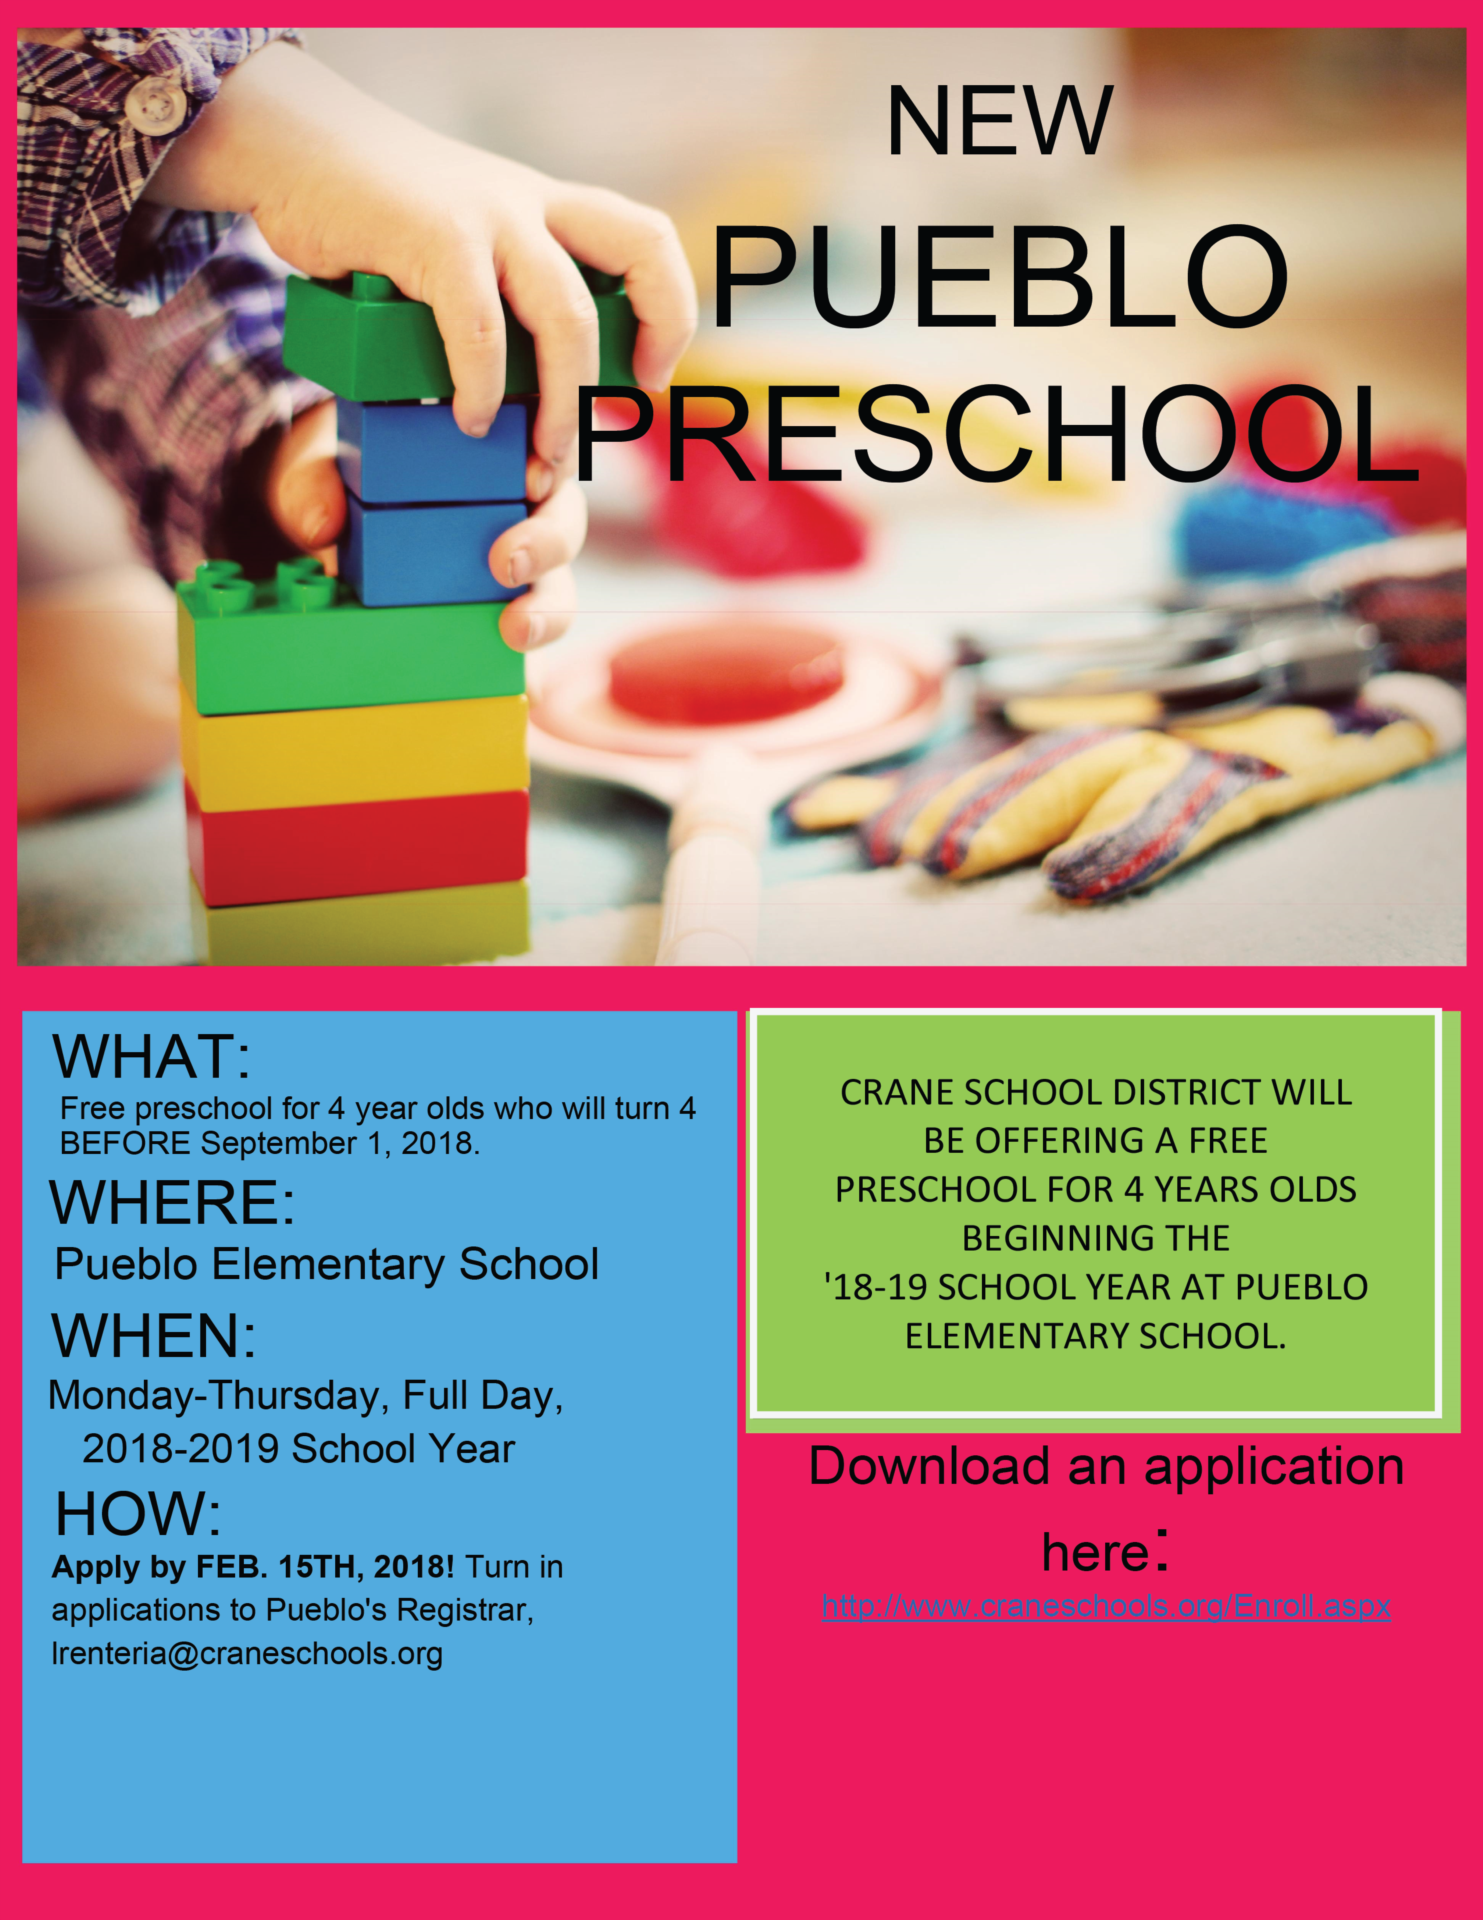 Pueblo Preschool Flier showing a child playing with blocks and information regarding regsitration